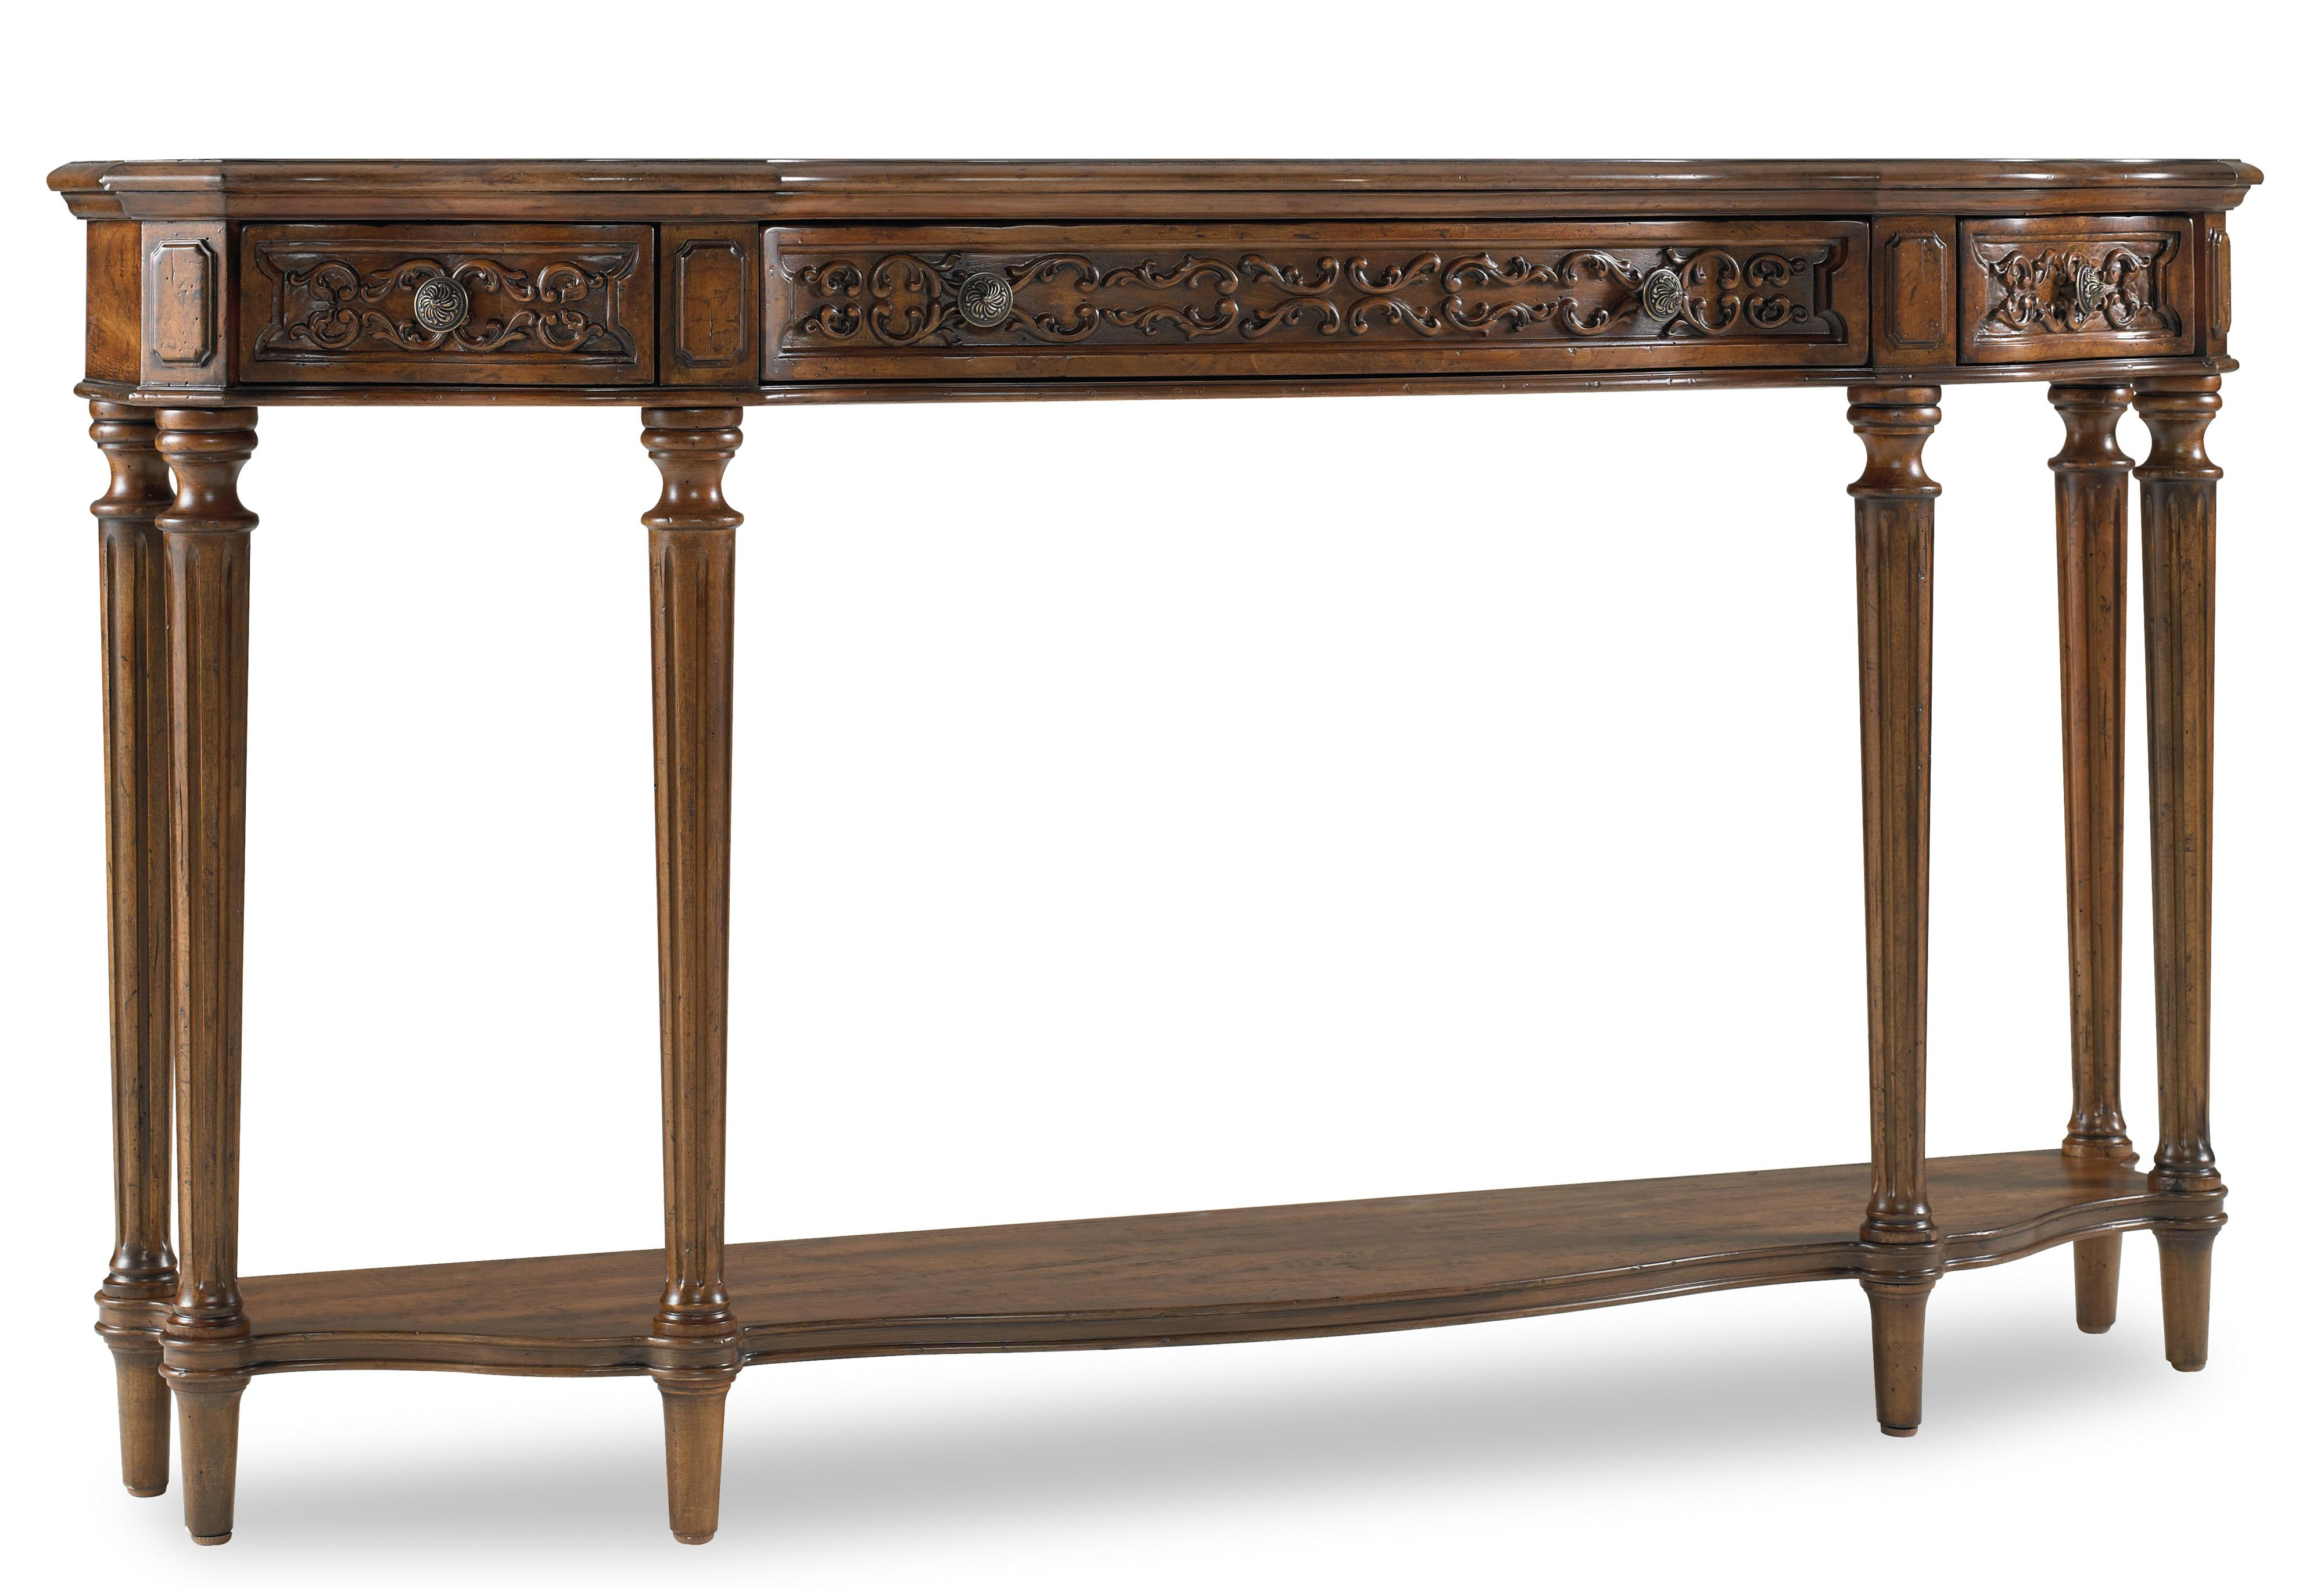 Hooker Furniture Living Room Accents Three Drawer Thin Console - Item Number: 5048-85122